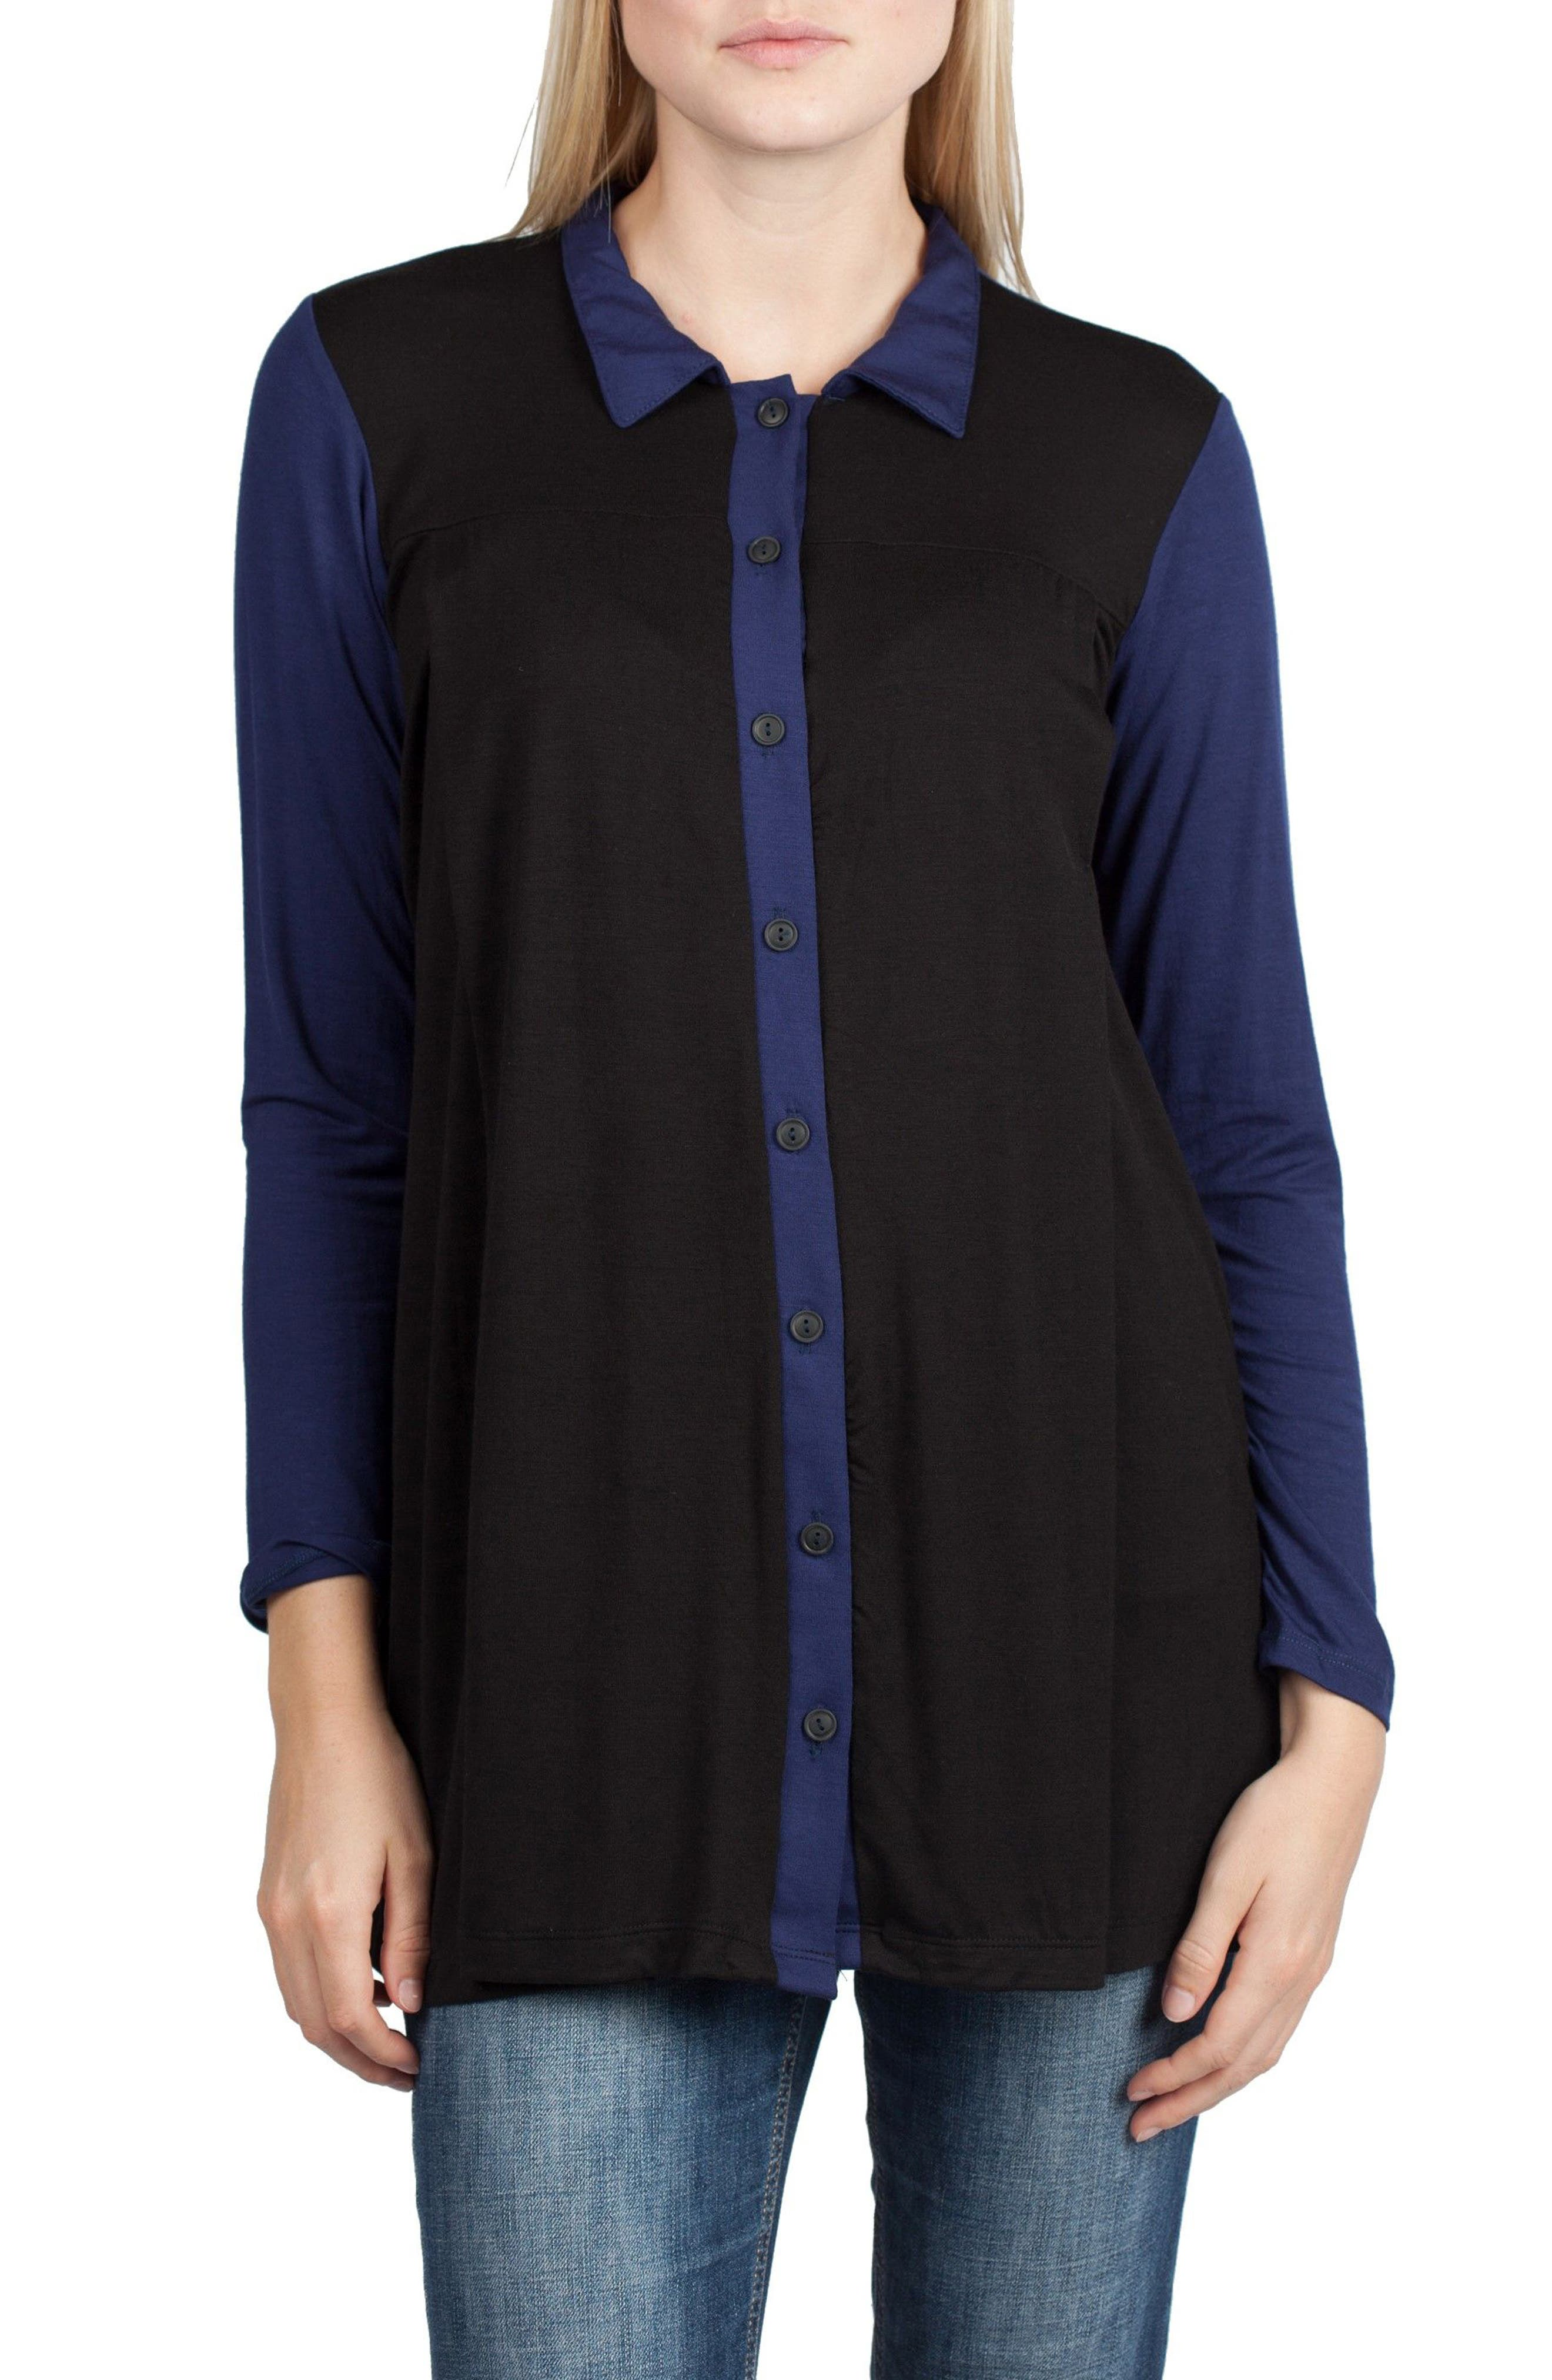 Alternate Image 1 Selected - Savi Mom Berlin Maternity/Nursing Tunic Top